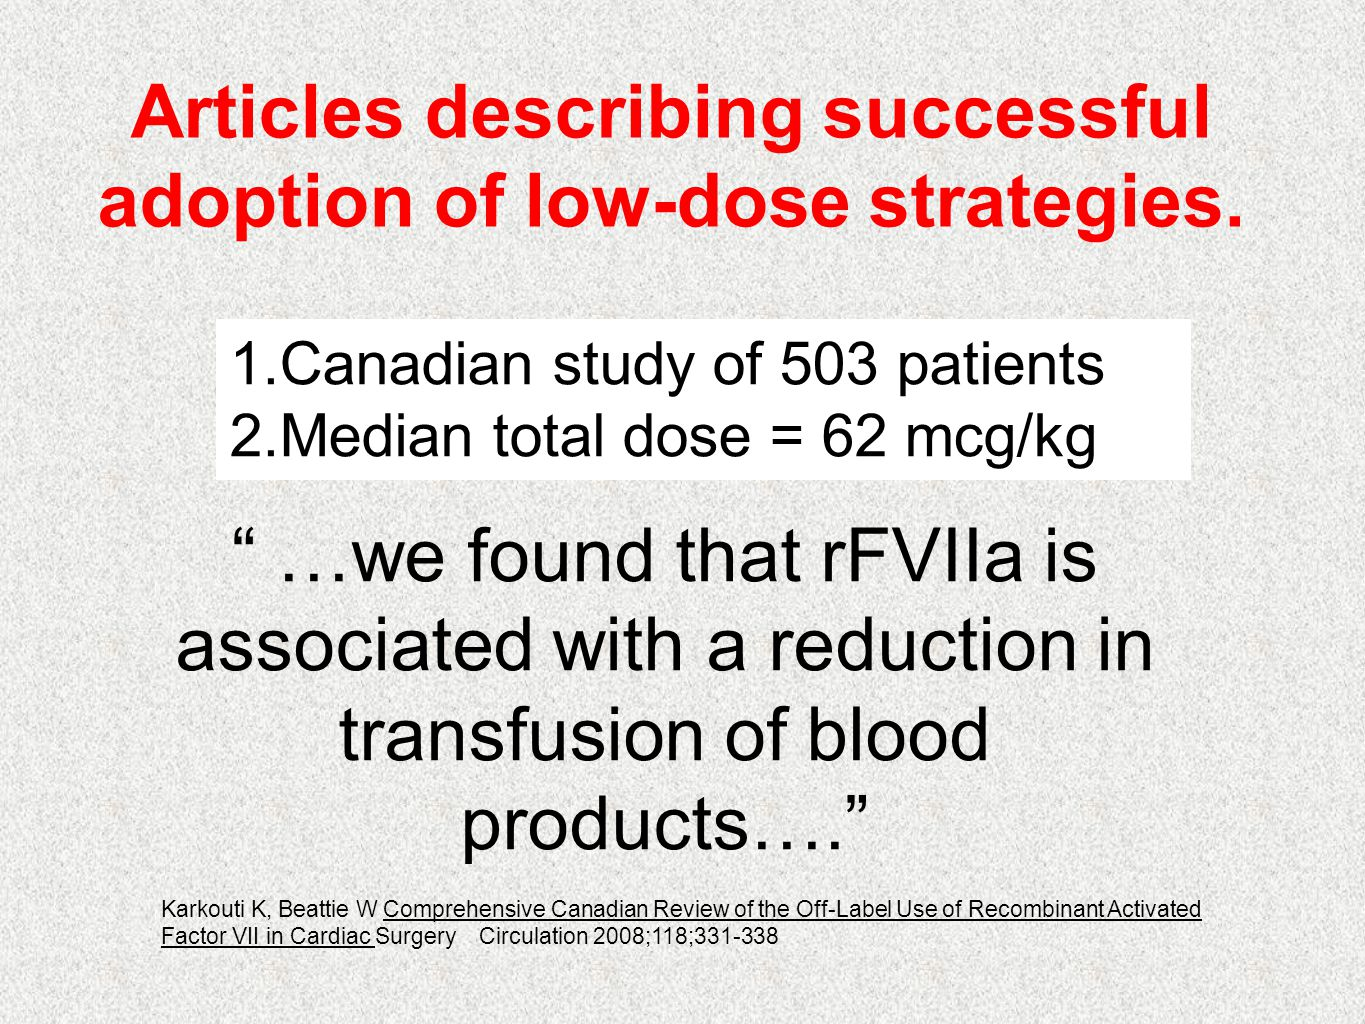 Articles describing successful adoption of low-dose strategies.